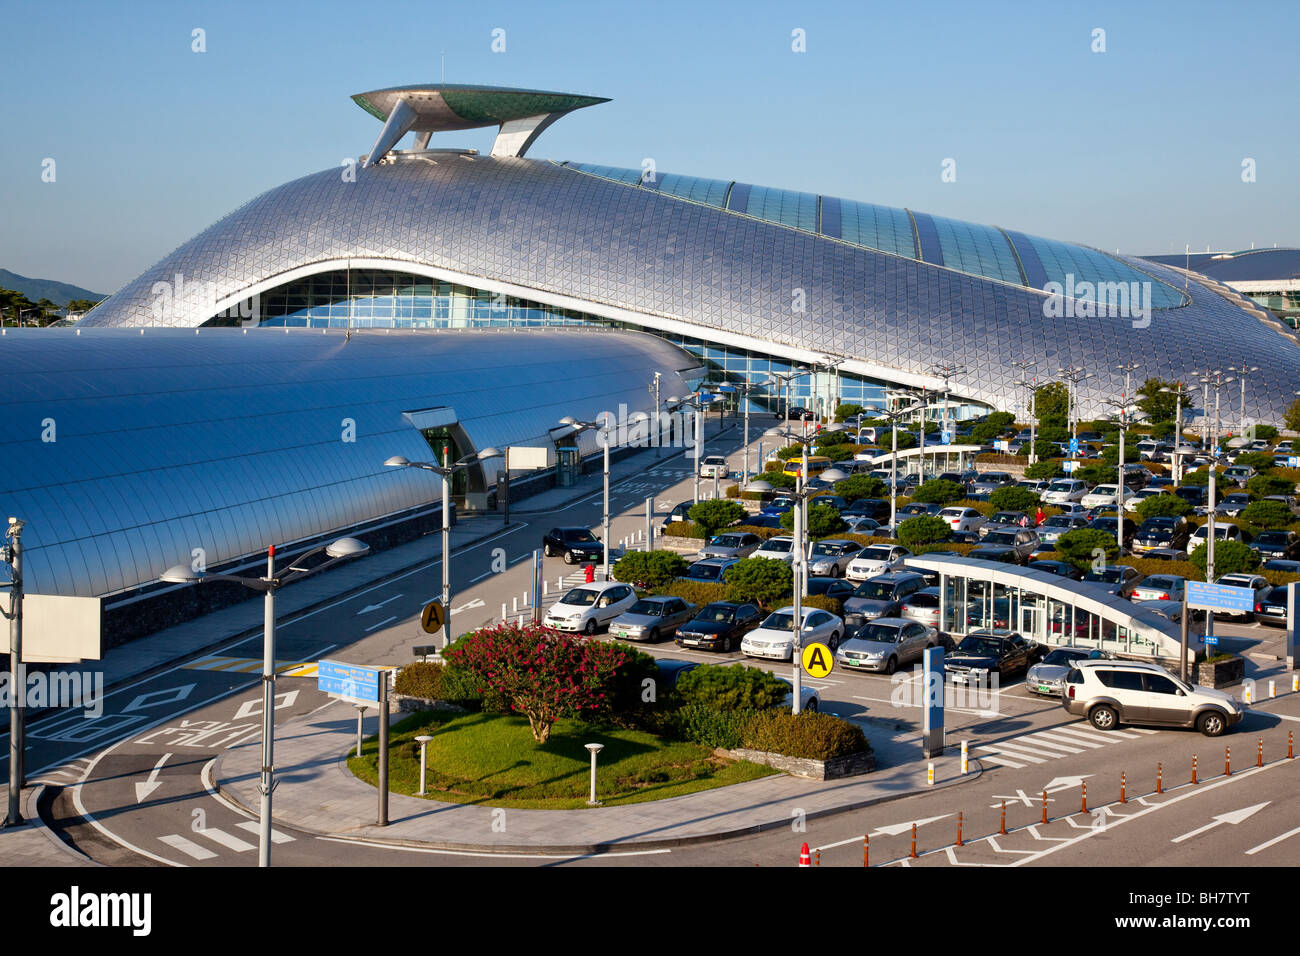 Incheon International Airport in Seoul South Korea Stock Photo ...